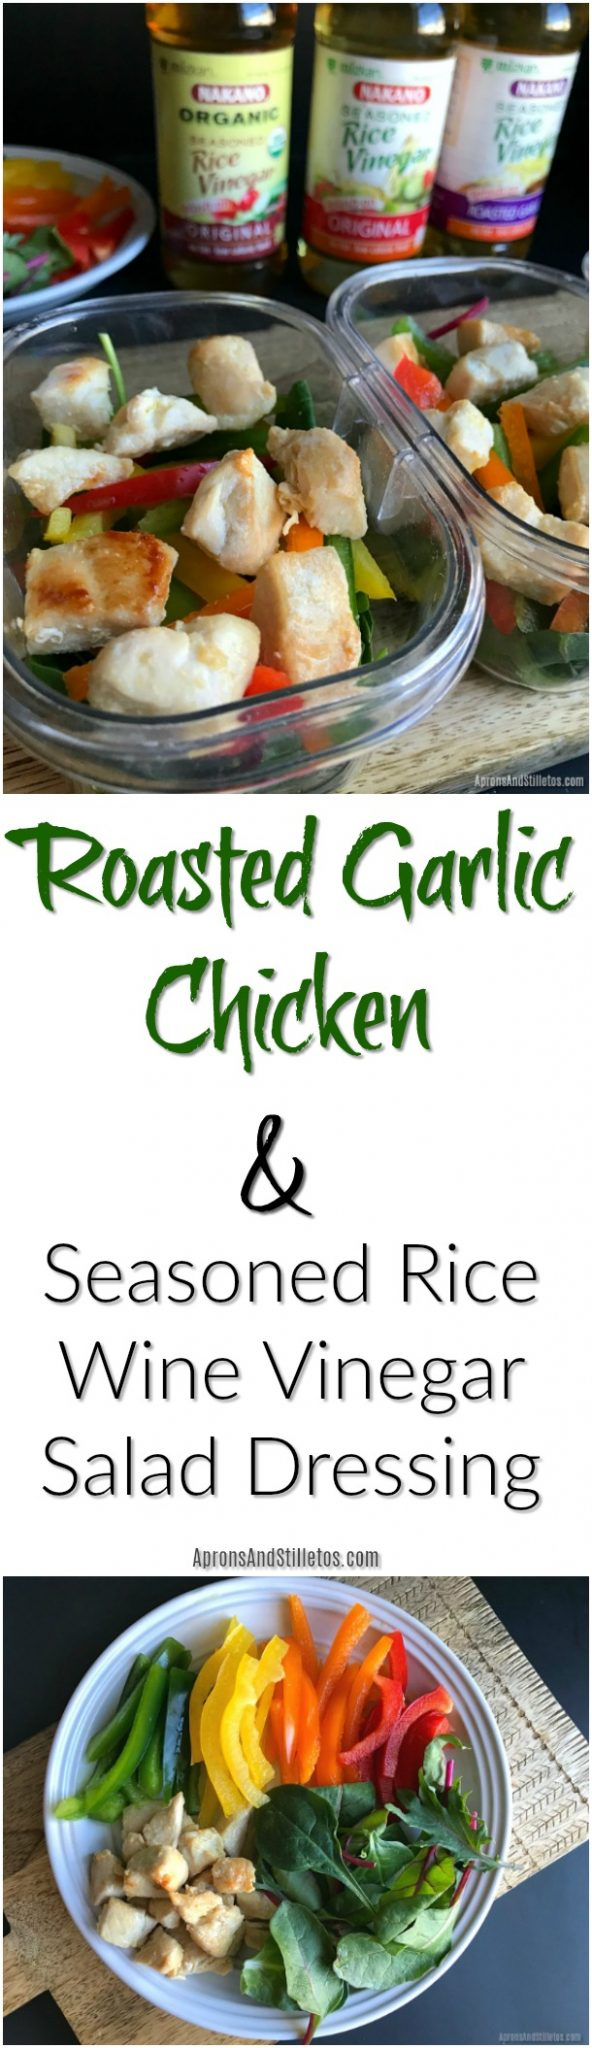 Roasted Garlic Chicken and Seasoned Rice Wine Vinegar Salad Dressing